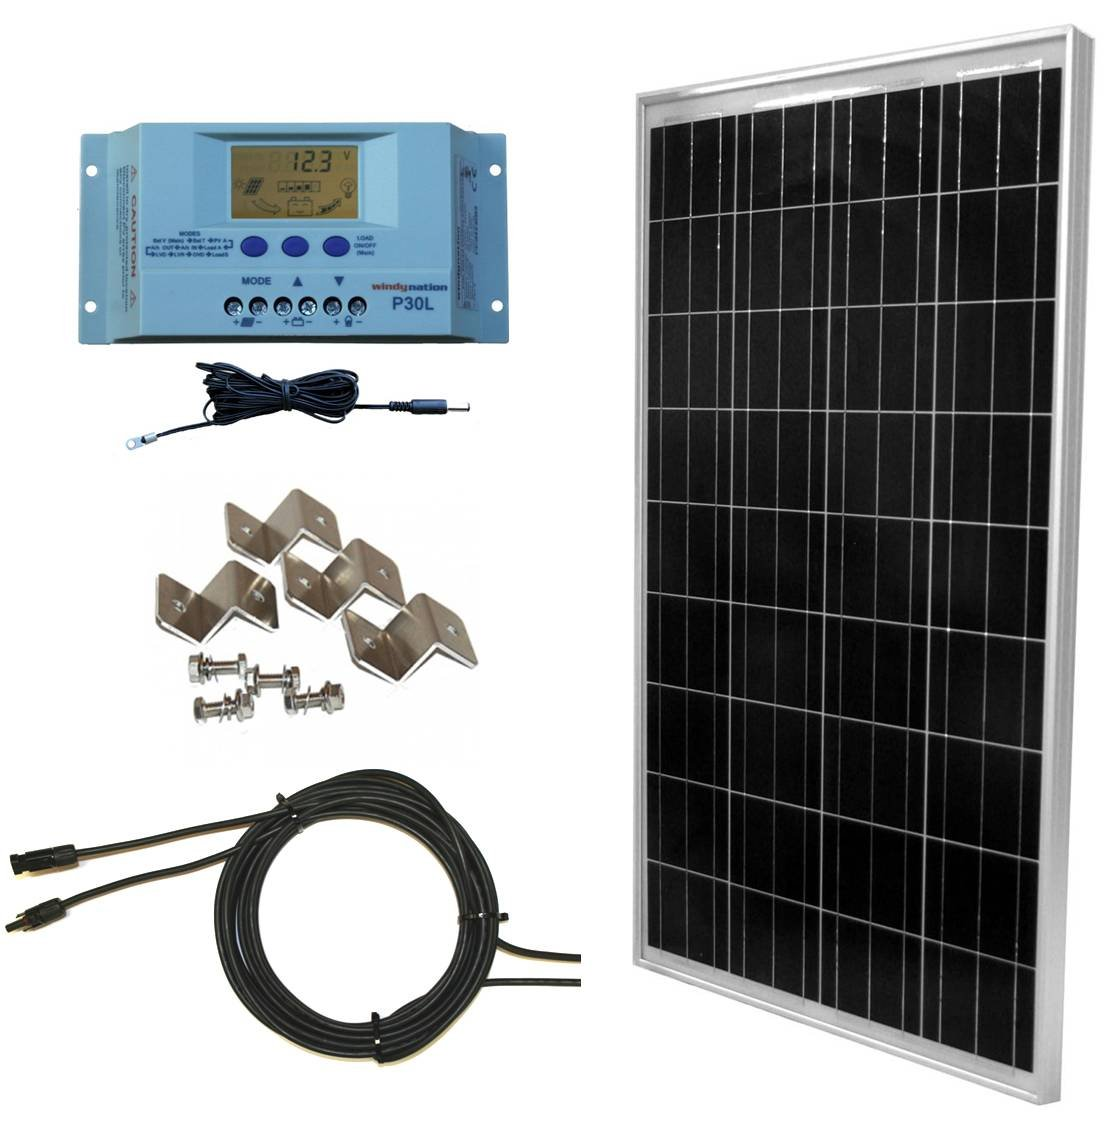 WindyNation 100 Watt Solar Panel Off-Grid RV Boat Kit with LCD PWM Charge Controller + Solar Cable + MC4 Connectors + Mounting Brackets by WindyNation